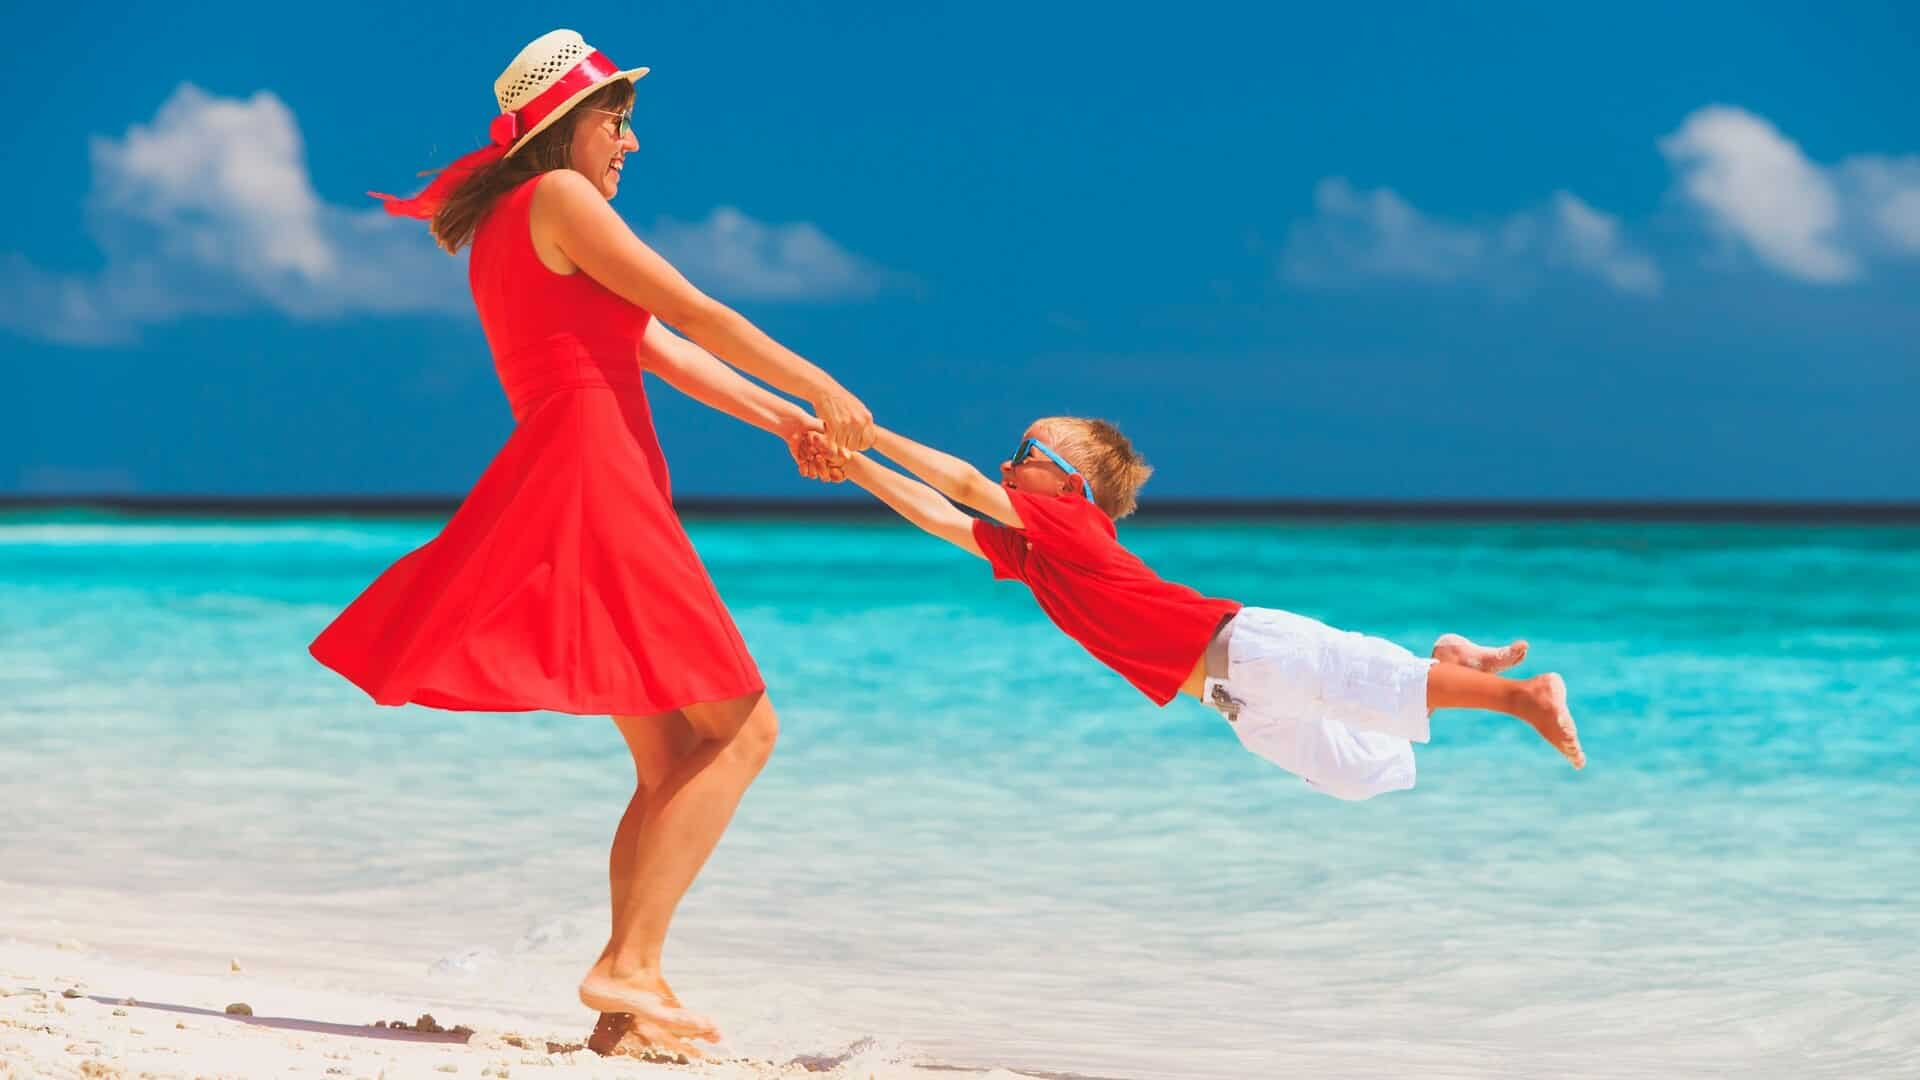 What can a child do in the Maldives?